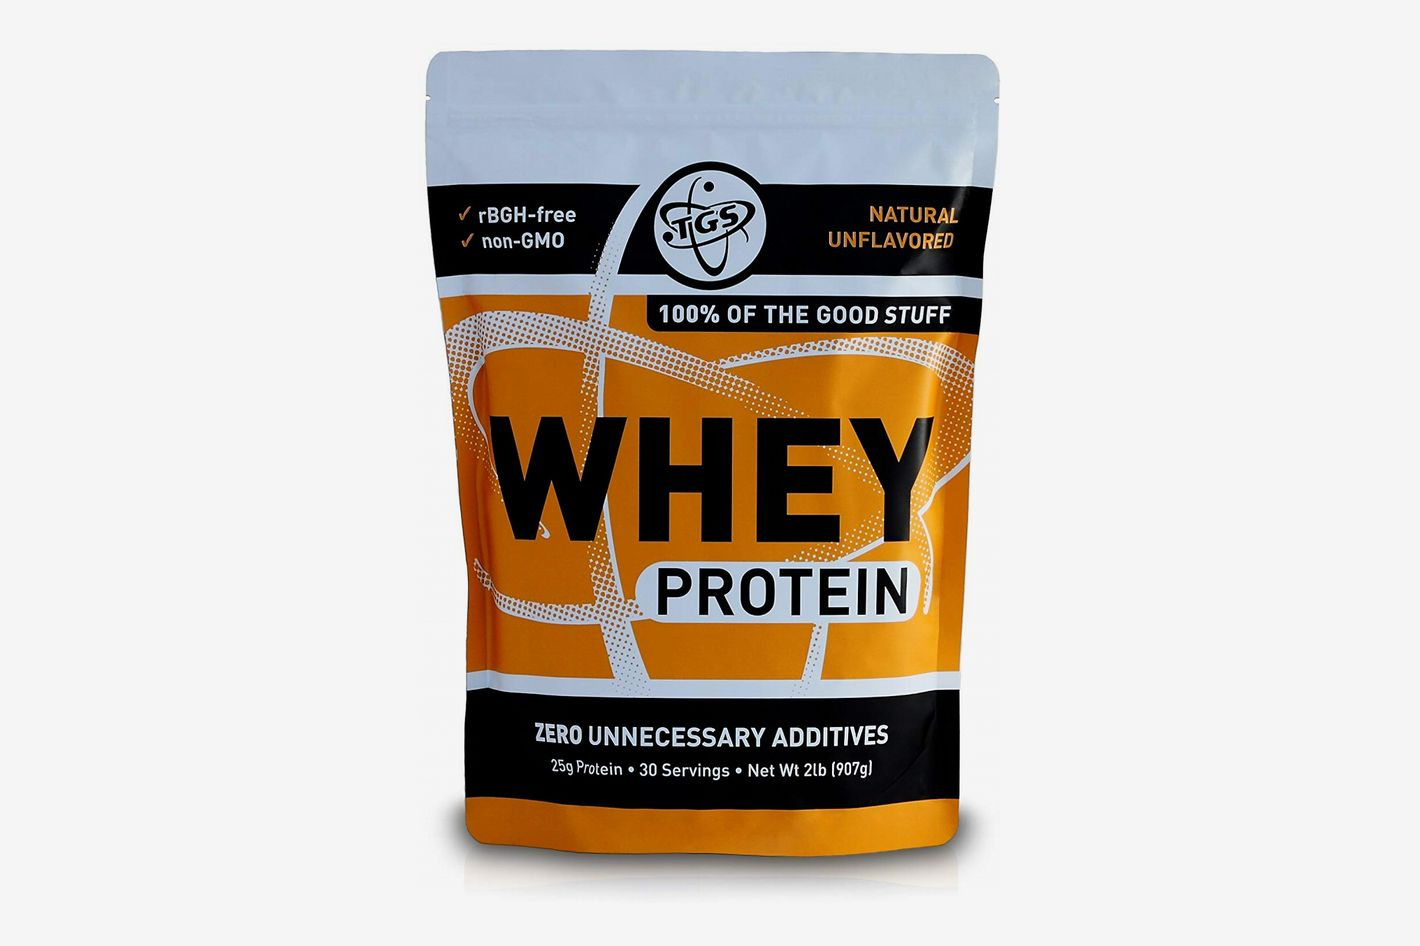 TGS All Natural 100% Whey Protein Powder